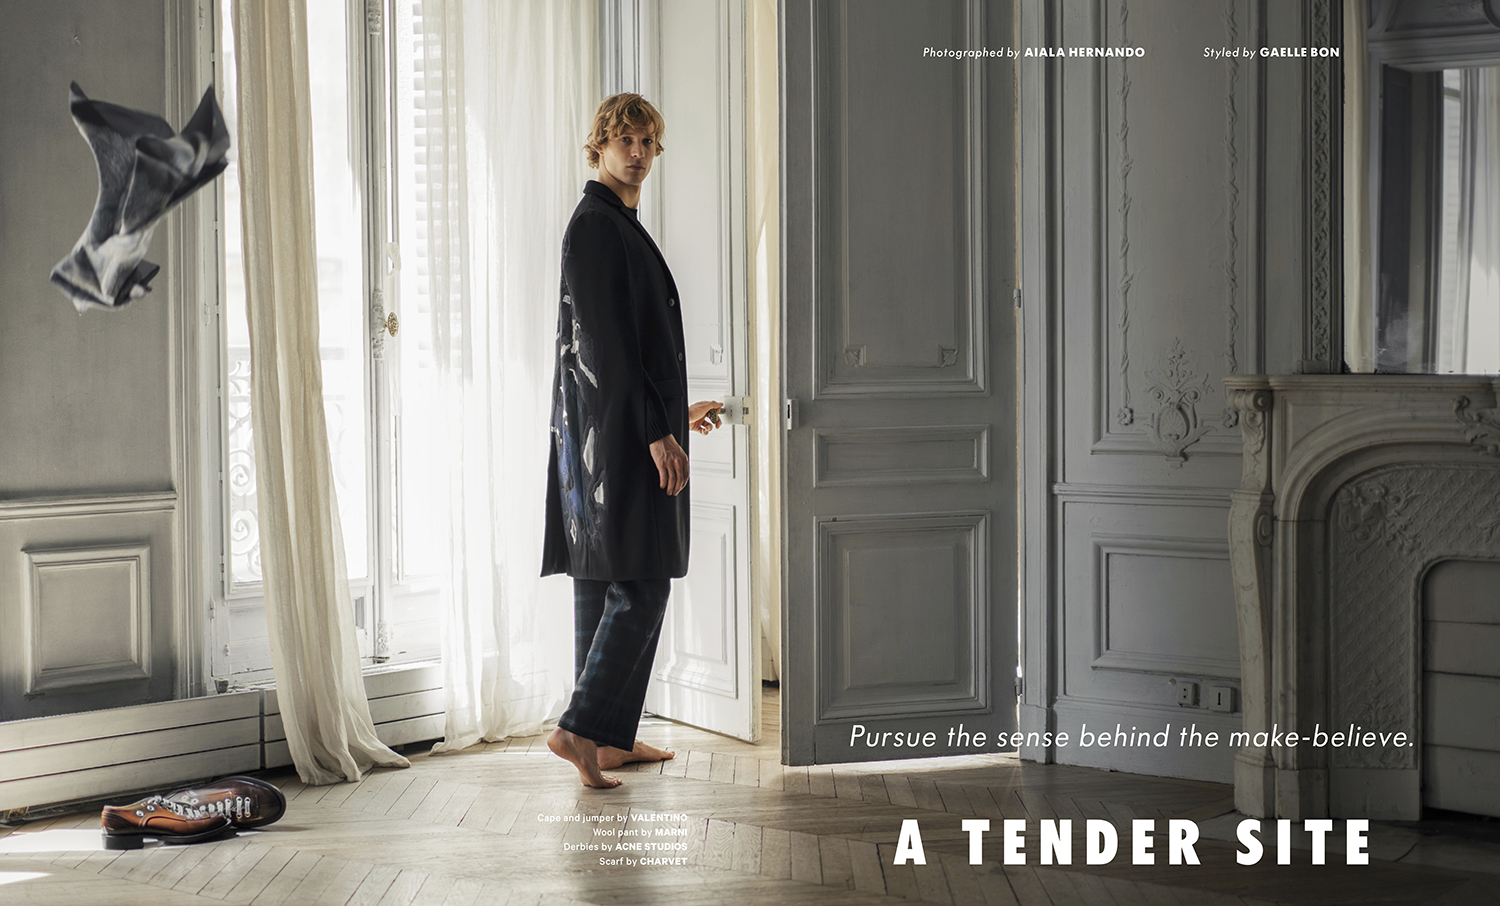 Sven de Vries for Essential Homme by Aiala Hernando